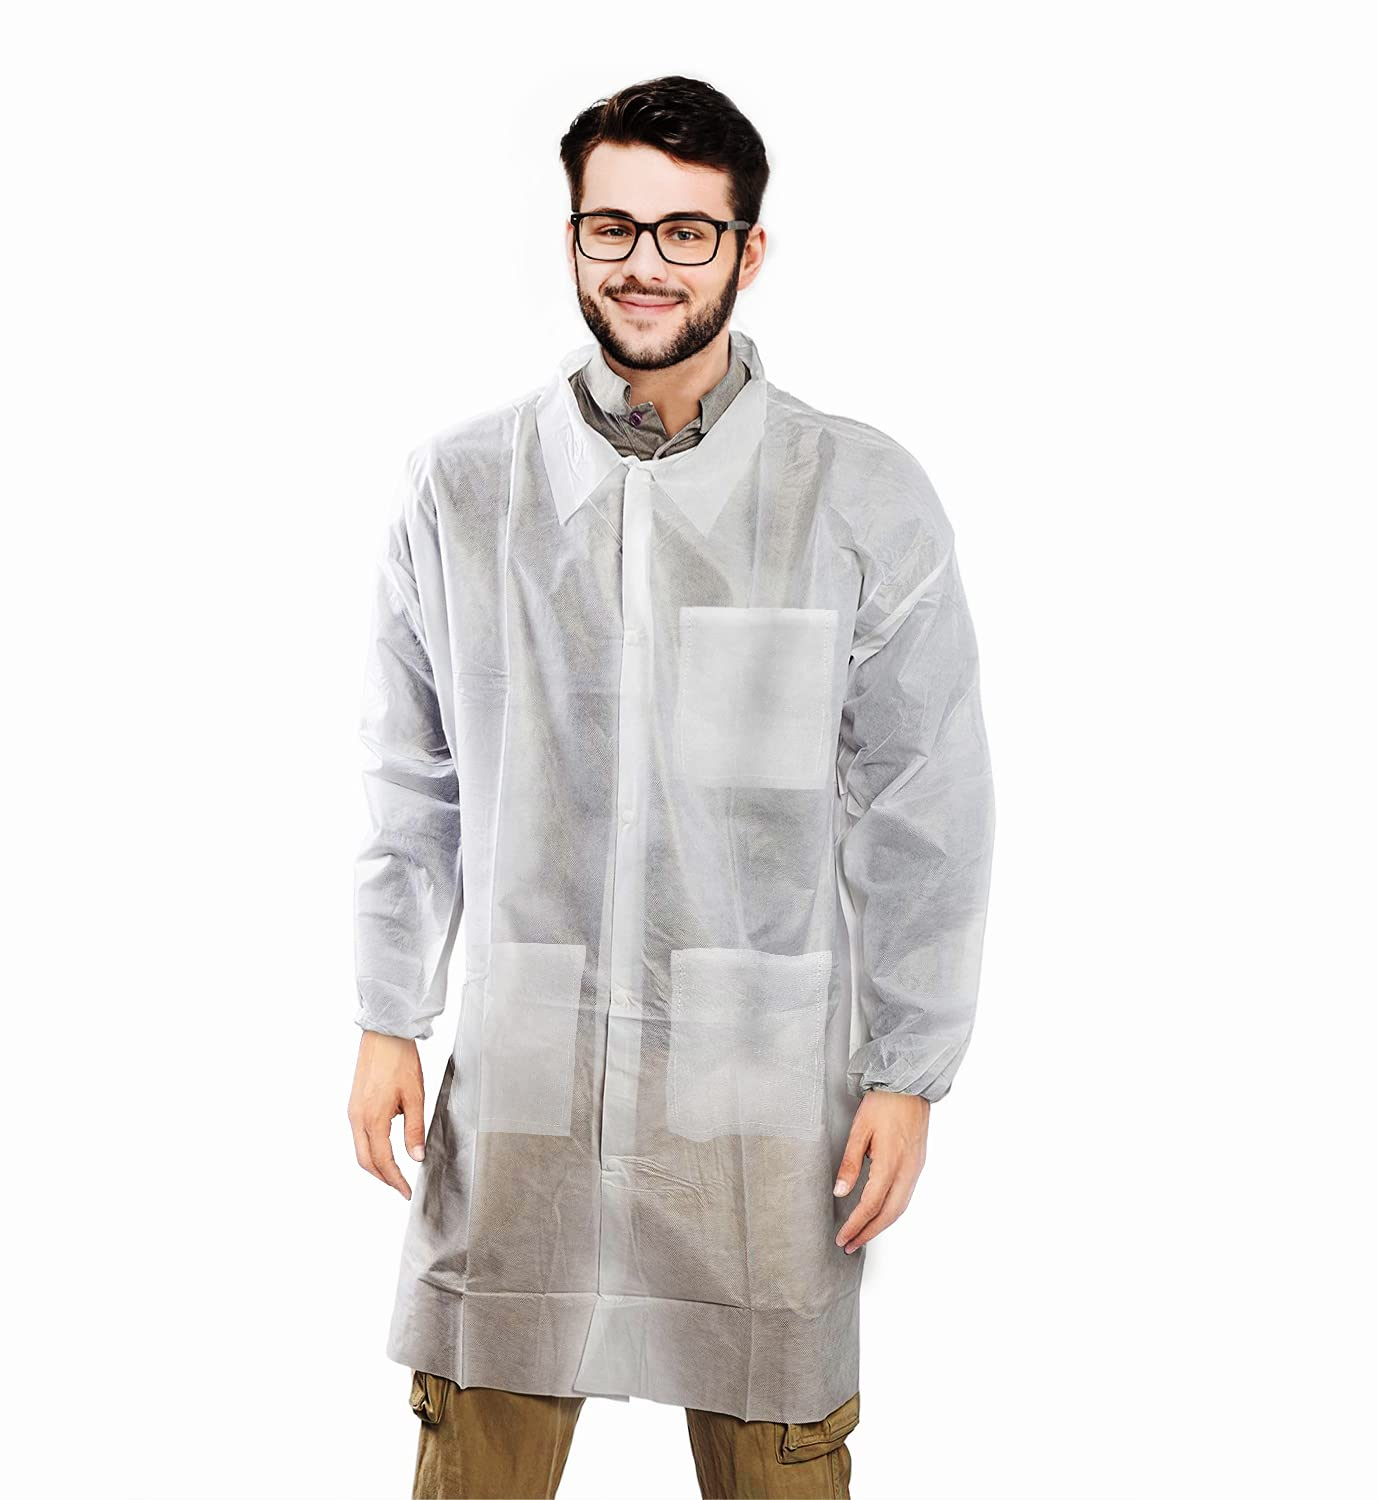 AMZ Disposable Lab Coats Sale Special Price Max 51% OFF XX-Large Pack Adult White 10 Polypro of